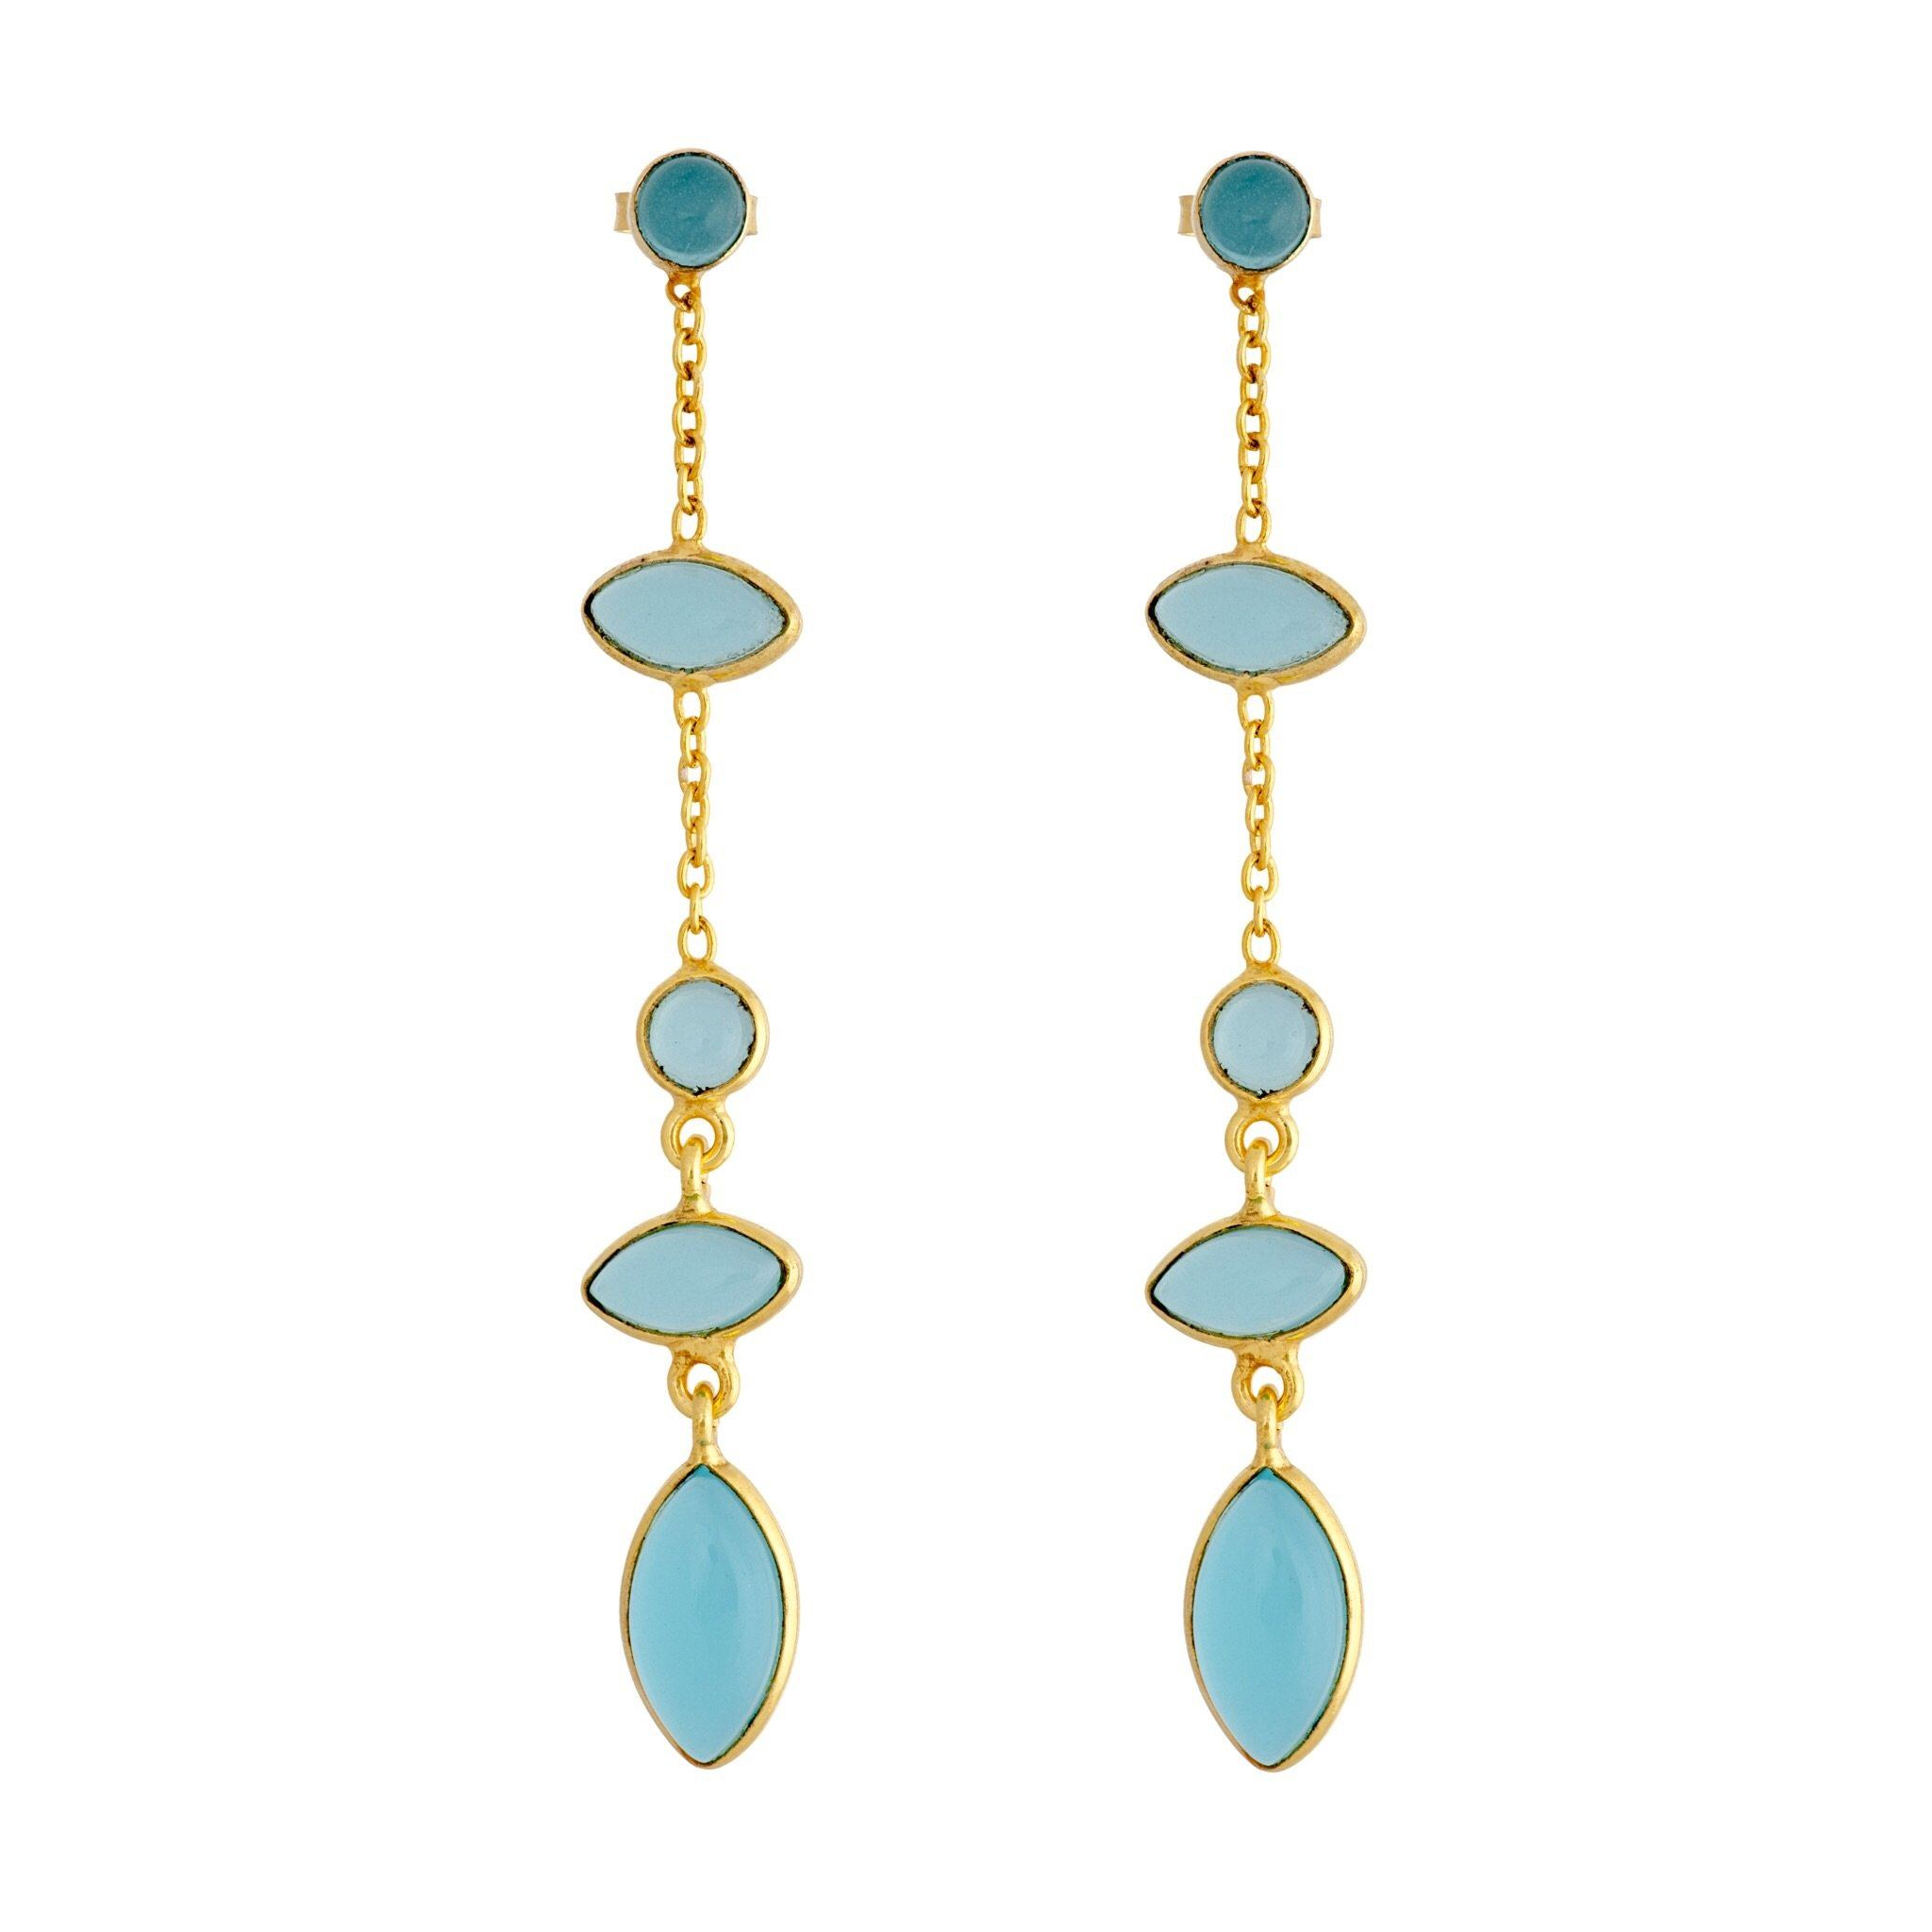 TA blue chalcedony earrings - MadamSiam